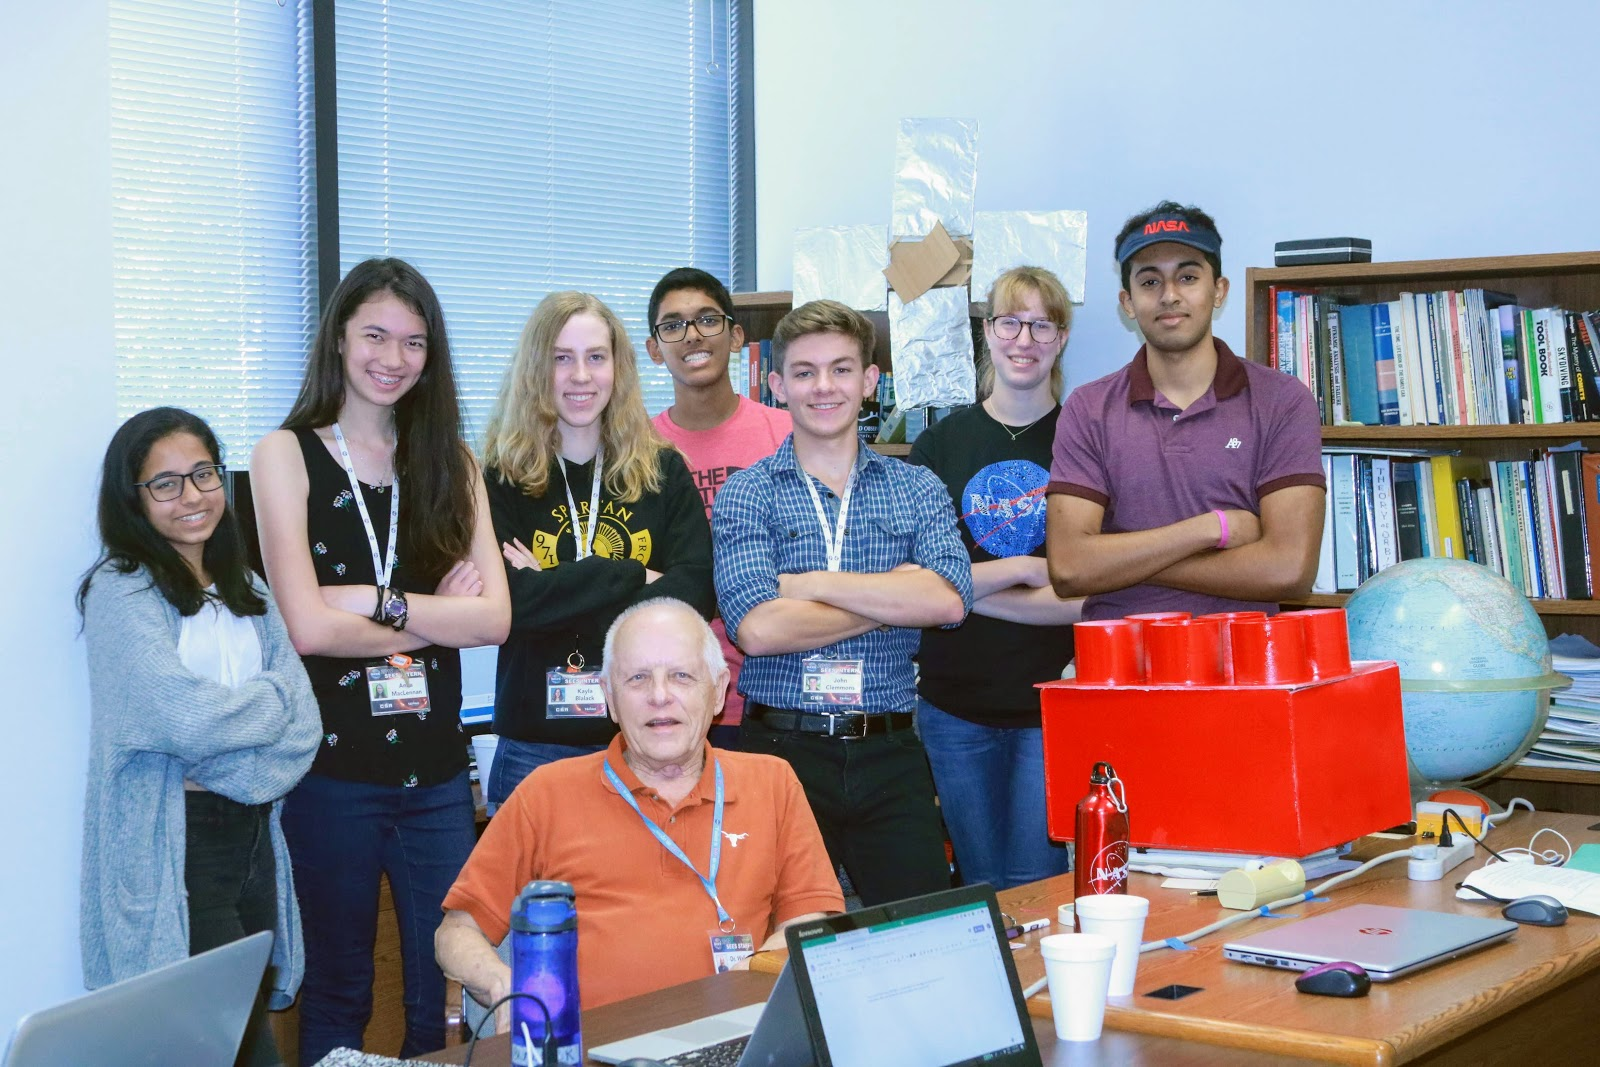 Seven high school students stand smiling with their arms folded behind their mentor, who is seated at a desk. On the desk is a tablet, along with white cups, a laptop, a globe, and a prototype that looks like a large red LEGO block.